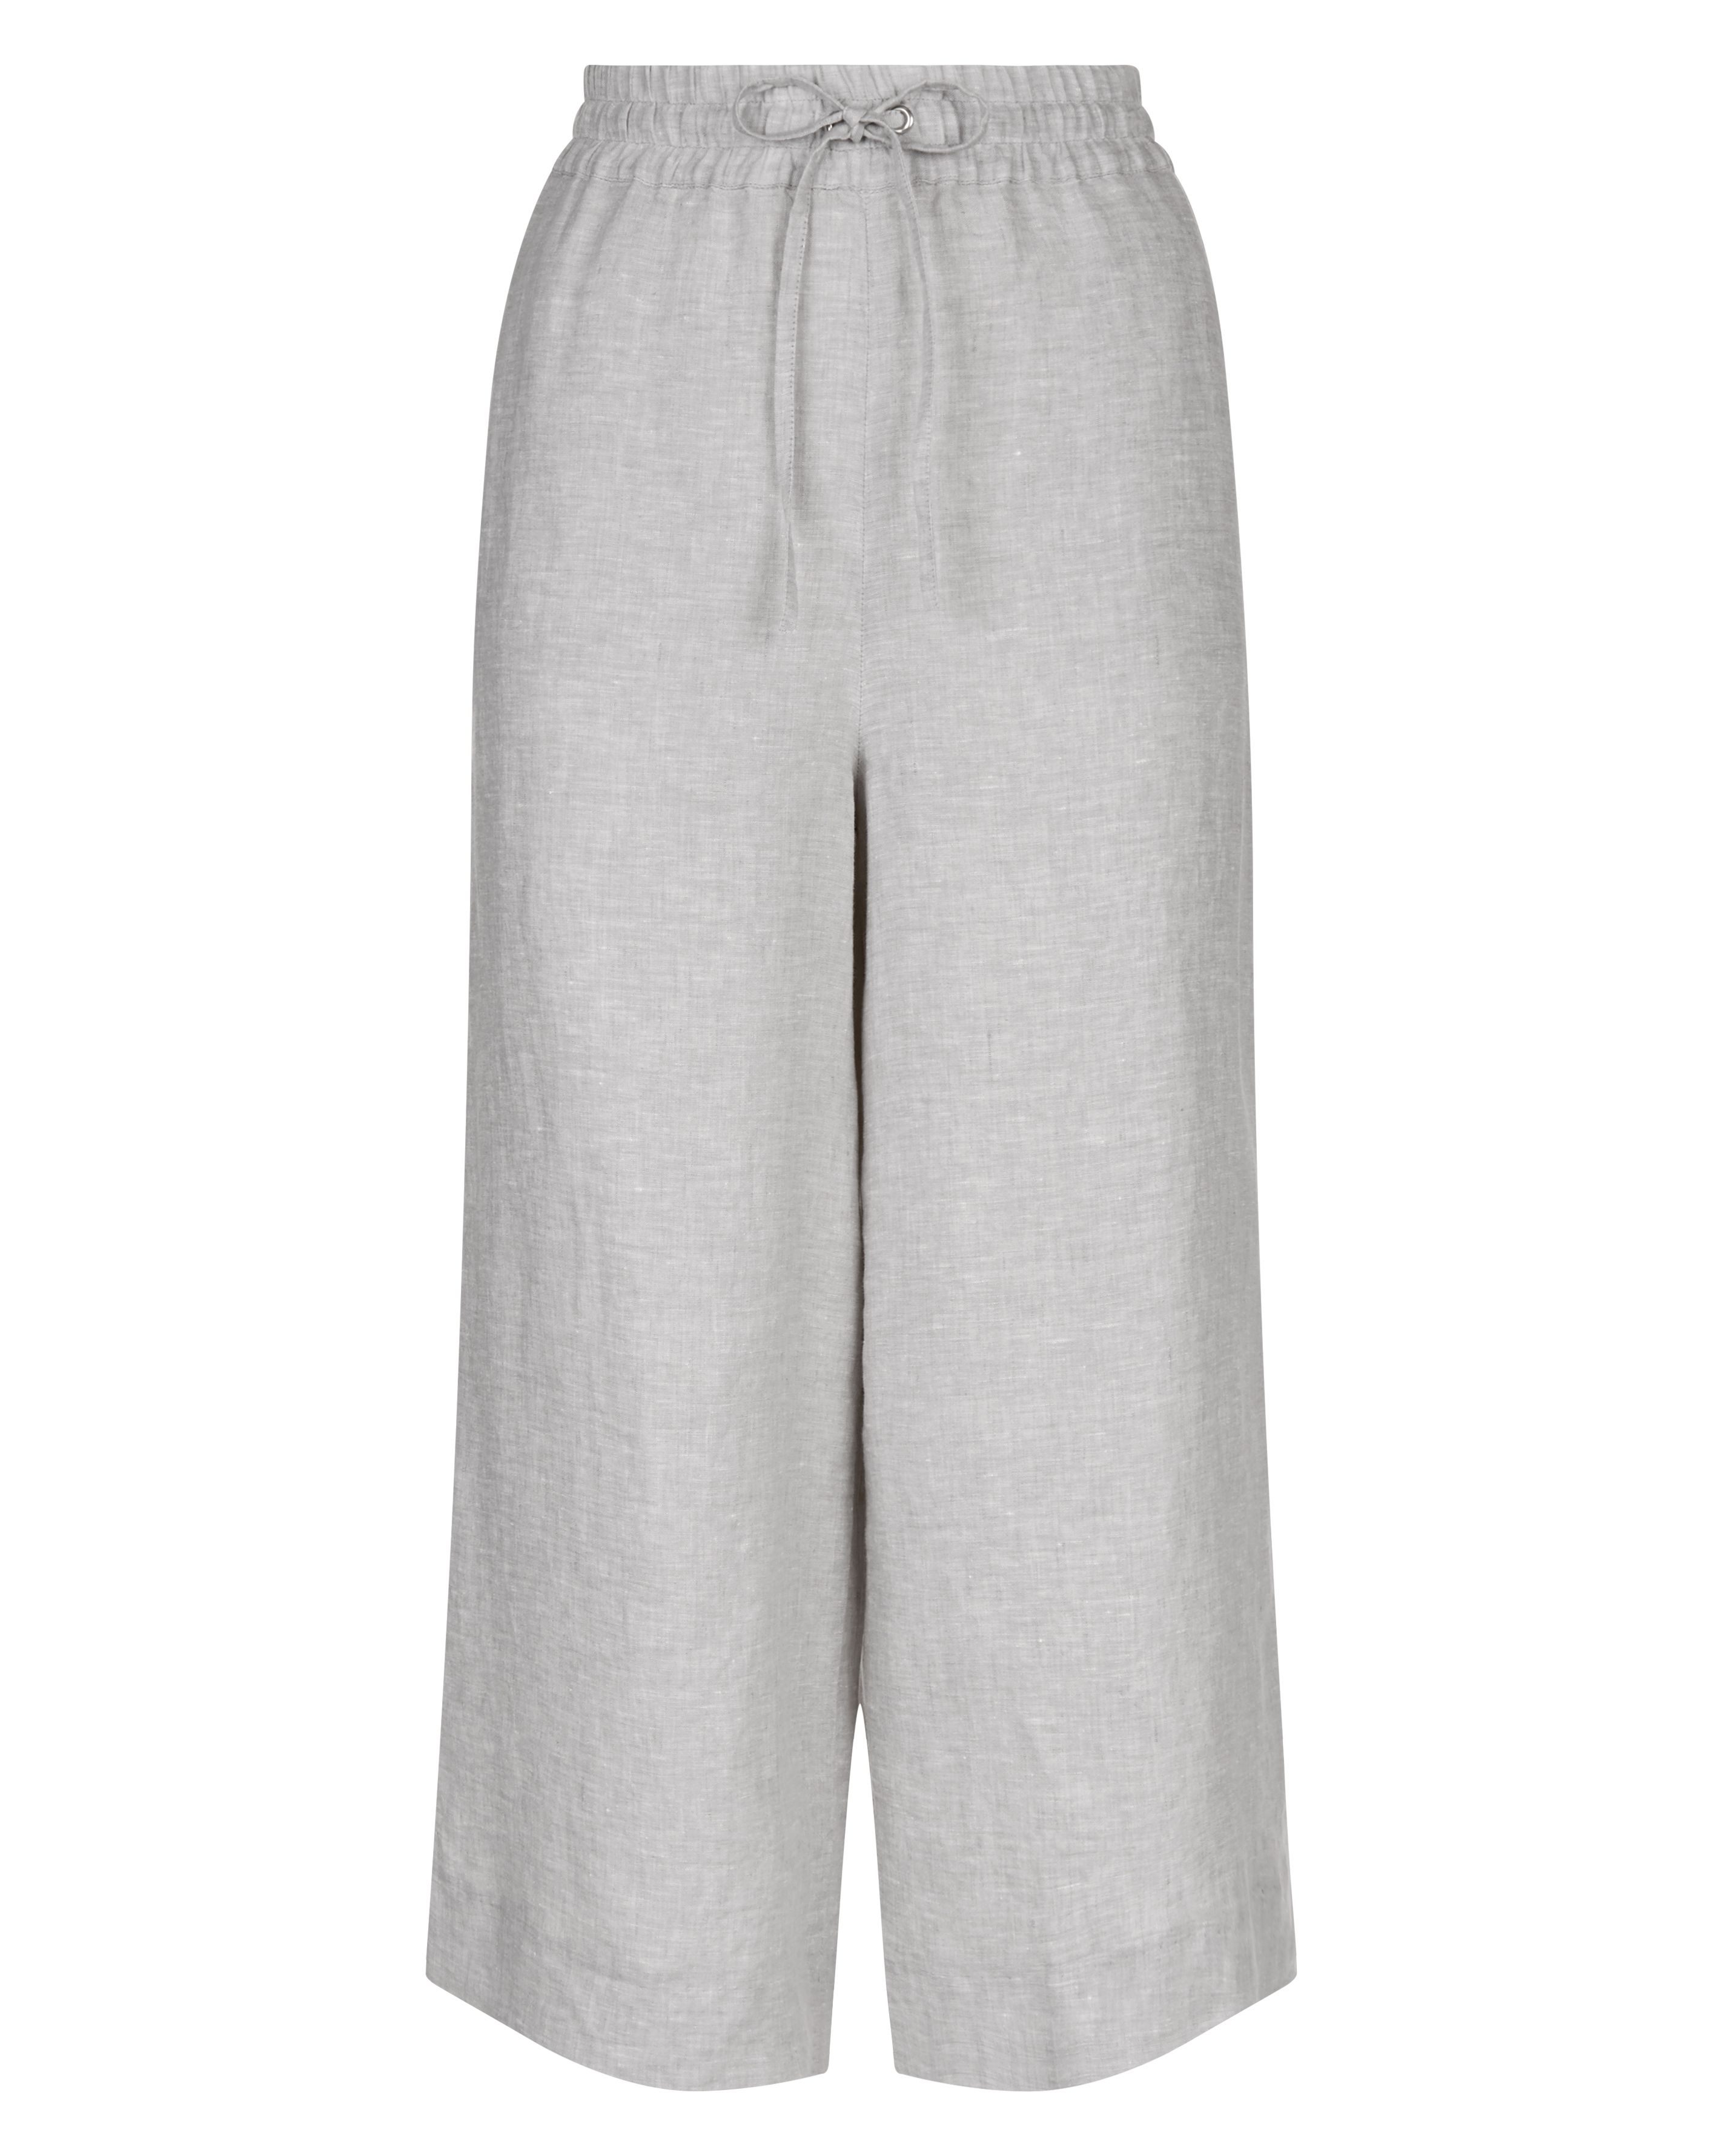 Jaeger Linen Wide Cropped Trousers, Grey